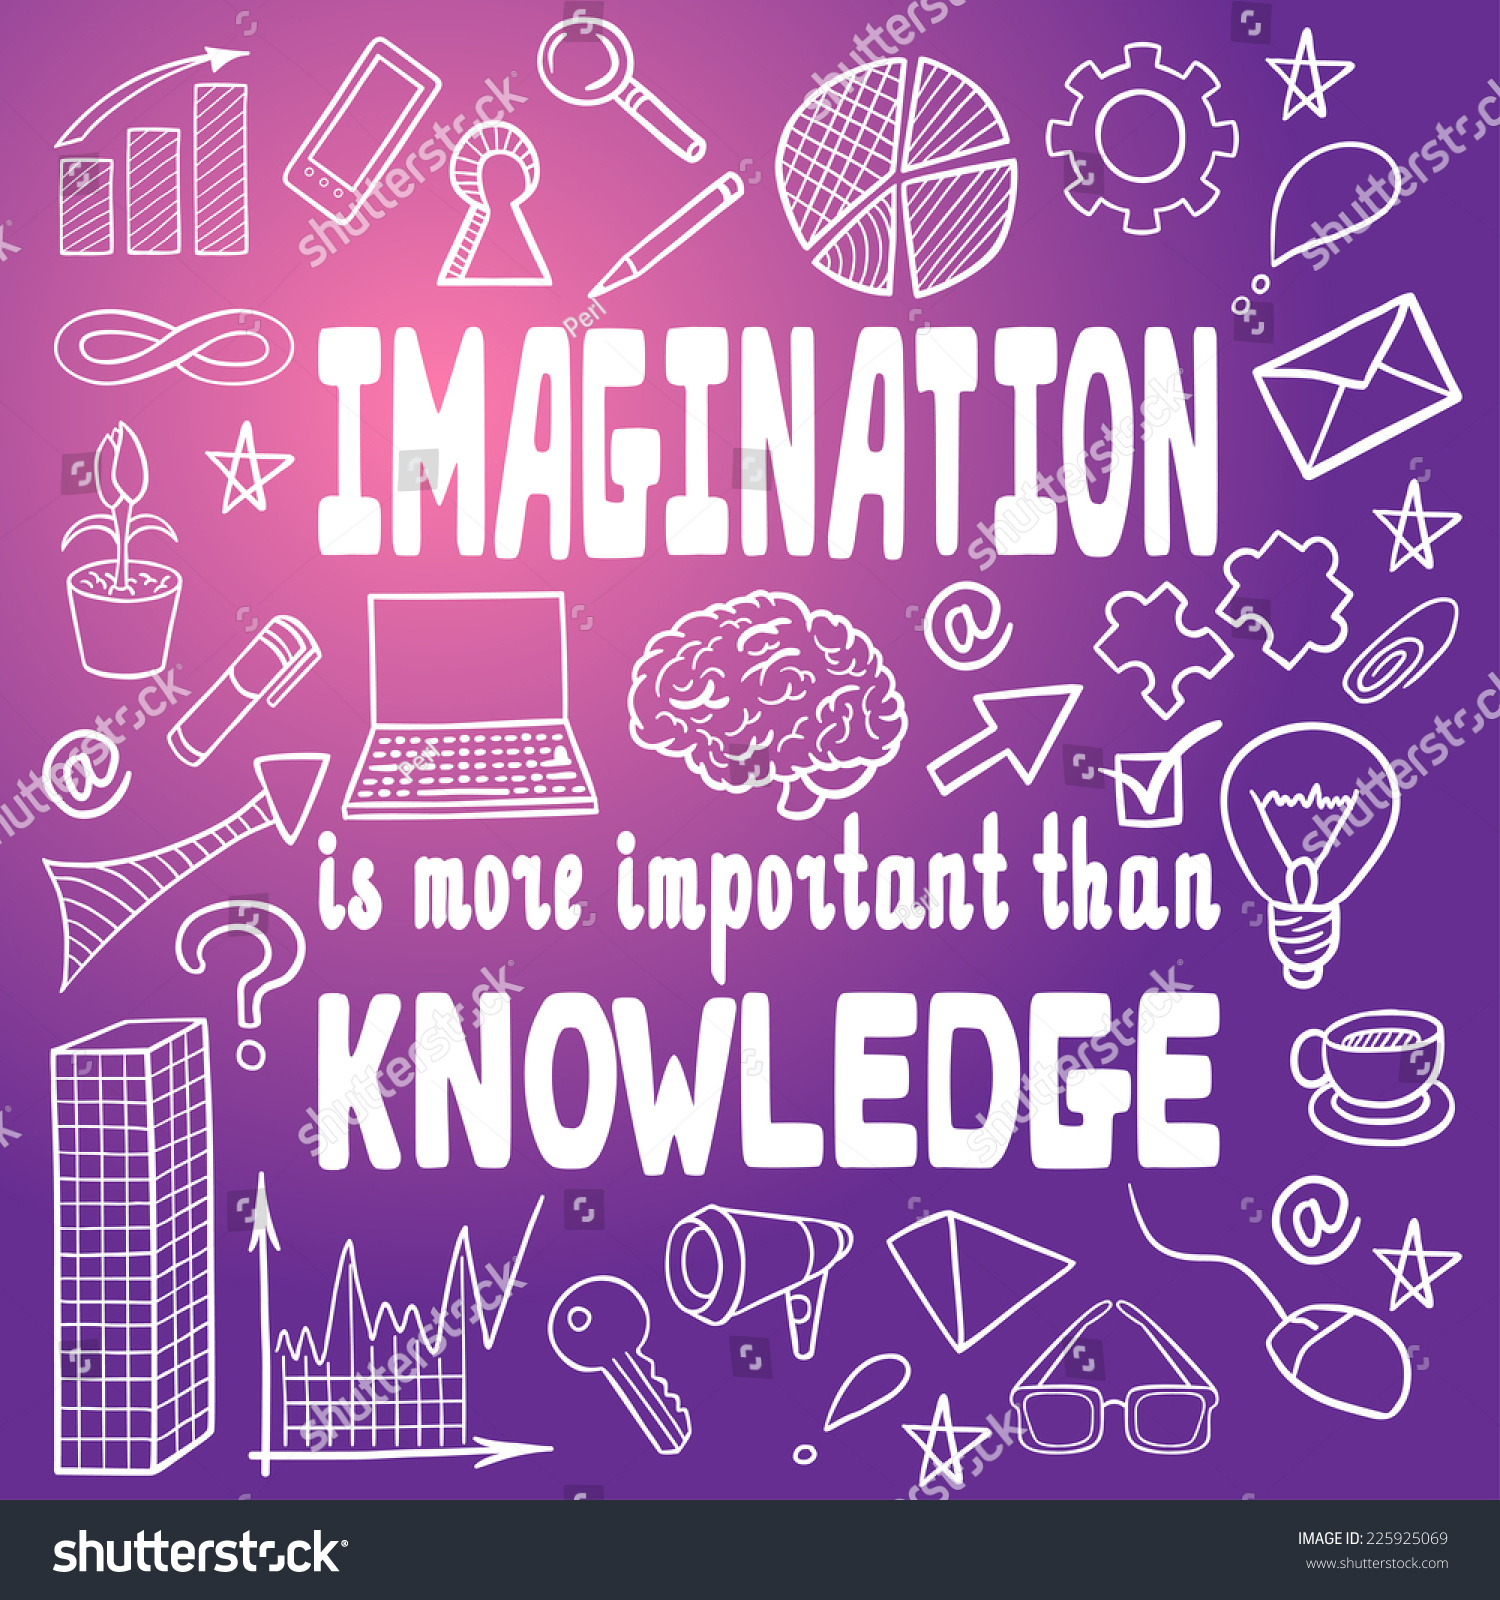 """imagination and knowledge essay Imagination is more important that knowledge essay sample """"imagination is more important that knowledge for knowledge is limited to all we now know and understand while imagination embraces the entire world, and all there ever will be to know and understand."""